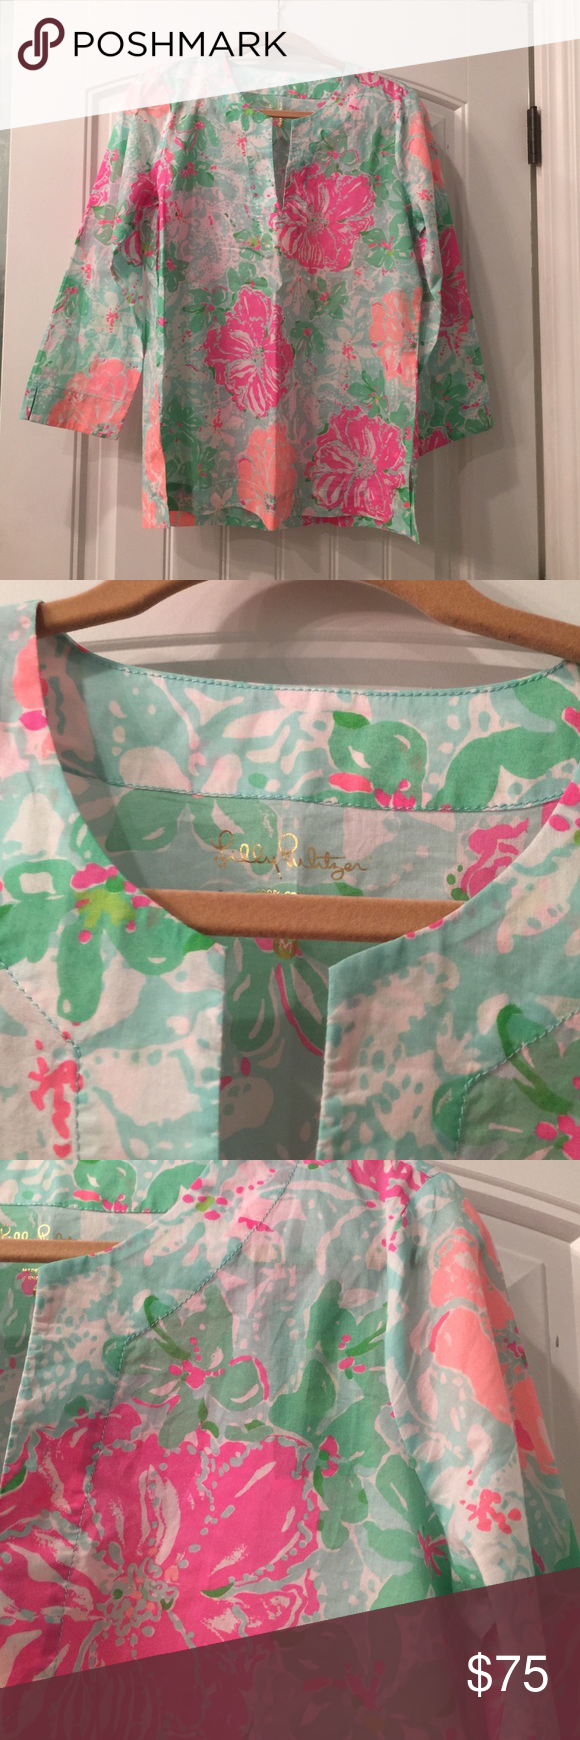 Lilly Pulitzer NWT Beachwalk Amelia Island Tunic M Poolside Amelia Island Beachwalk Tunic Lilly Pulitzer Tops Tunics